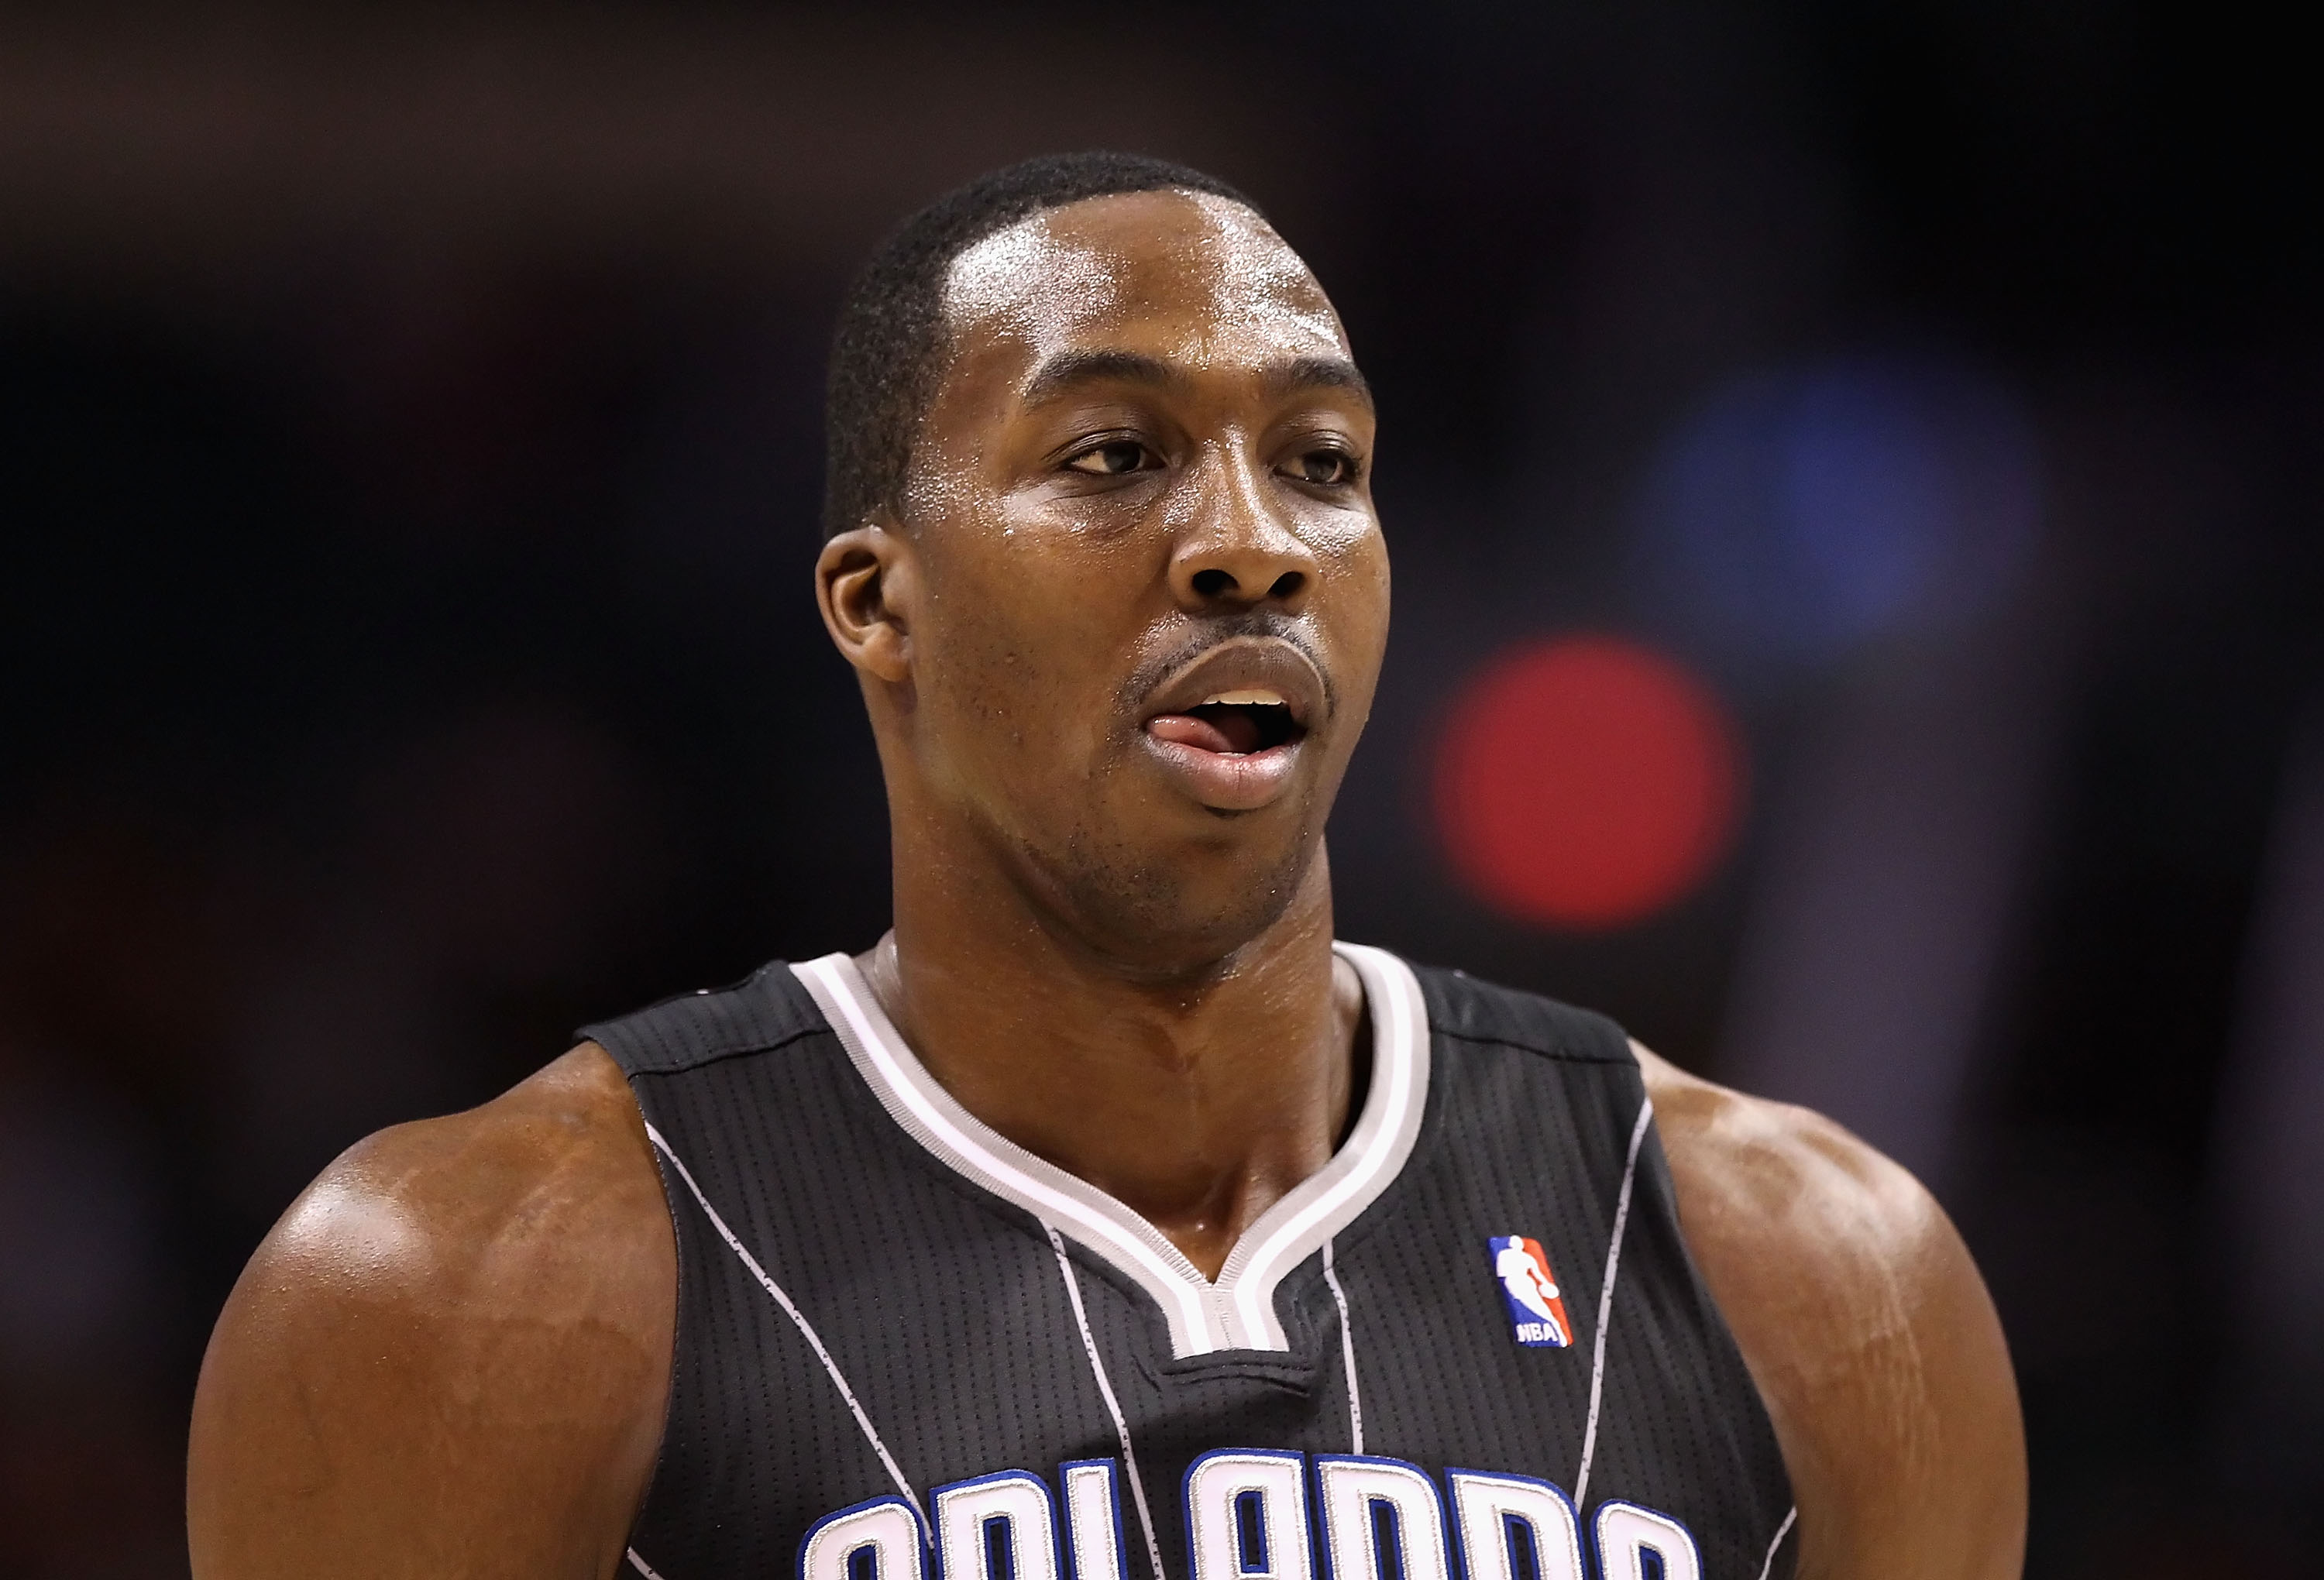 PHOENIX, AZ - MARCH 13:  Dwight Howard #12 of the Orlando Magic during the NBA game against the Phoenix Suns at US Airways Center on March 13, 2011 in Phoenix, Arizona. The Magic defeated the Suns 111-88. NOTE TO USER: User expressly acknowledges and agre